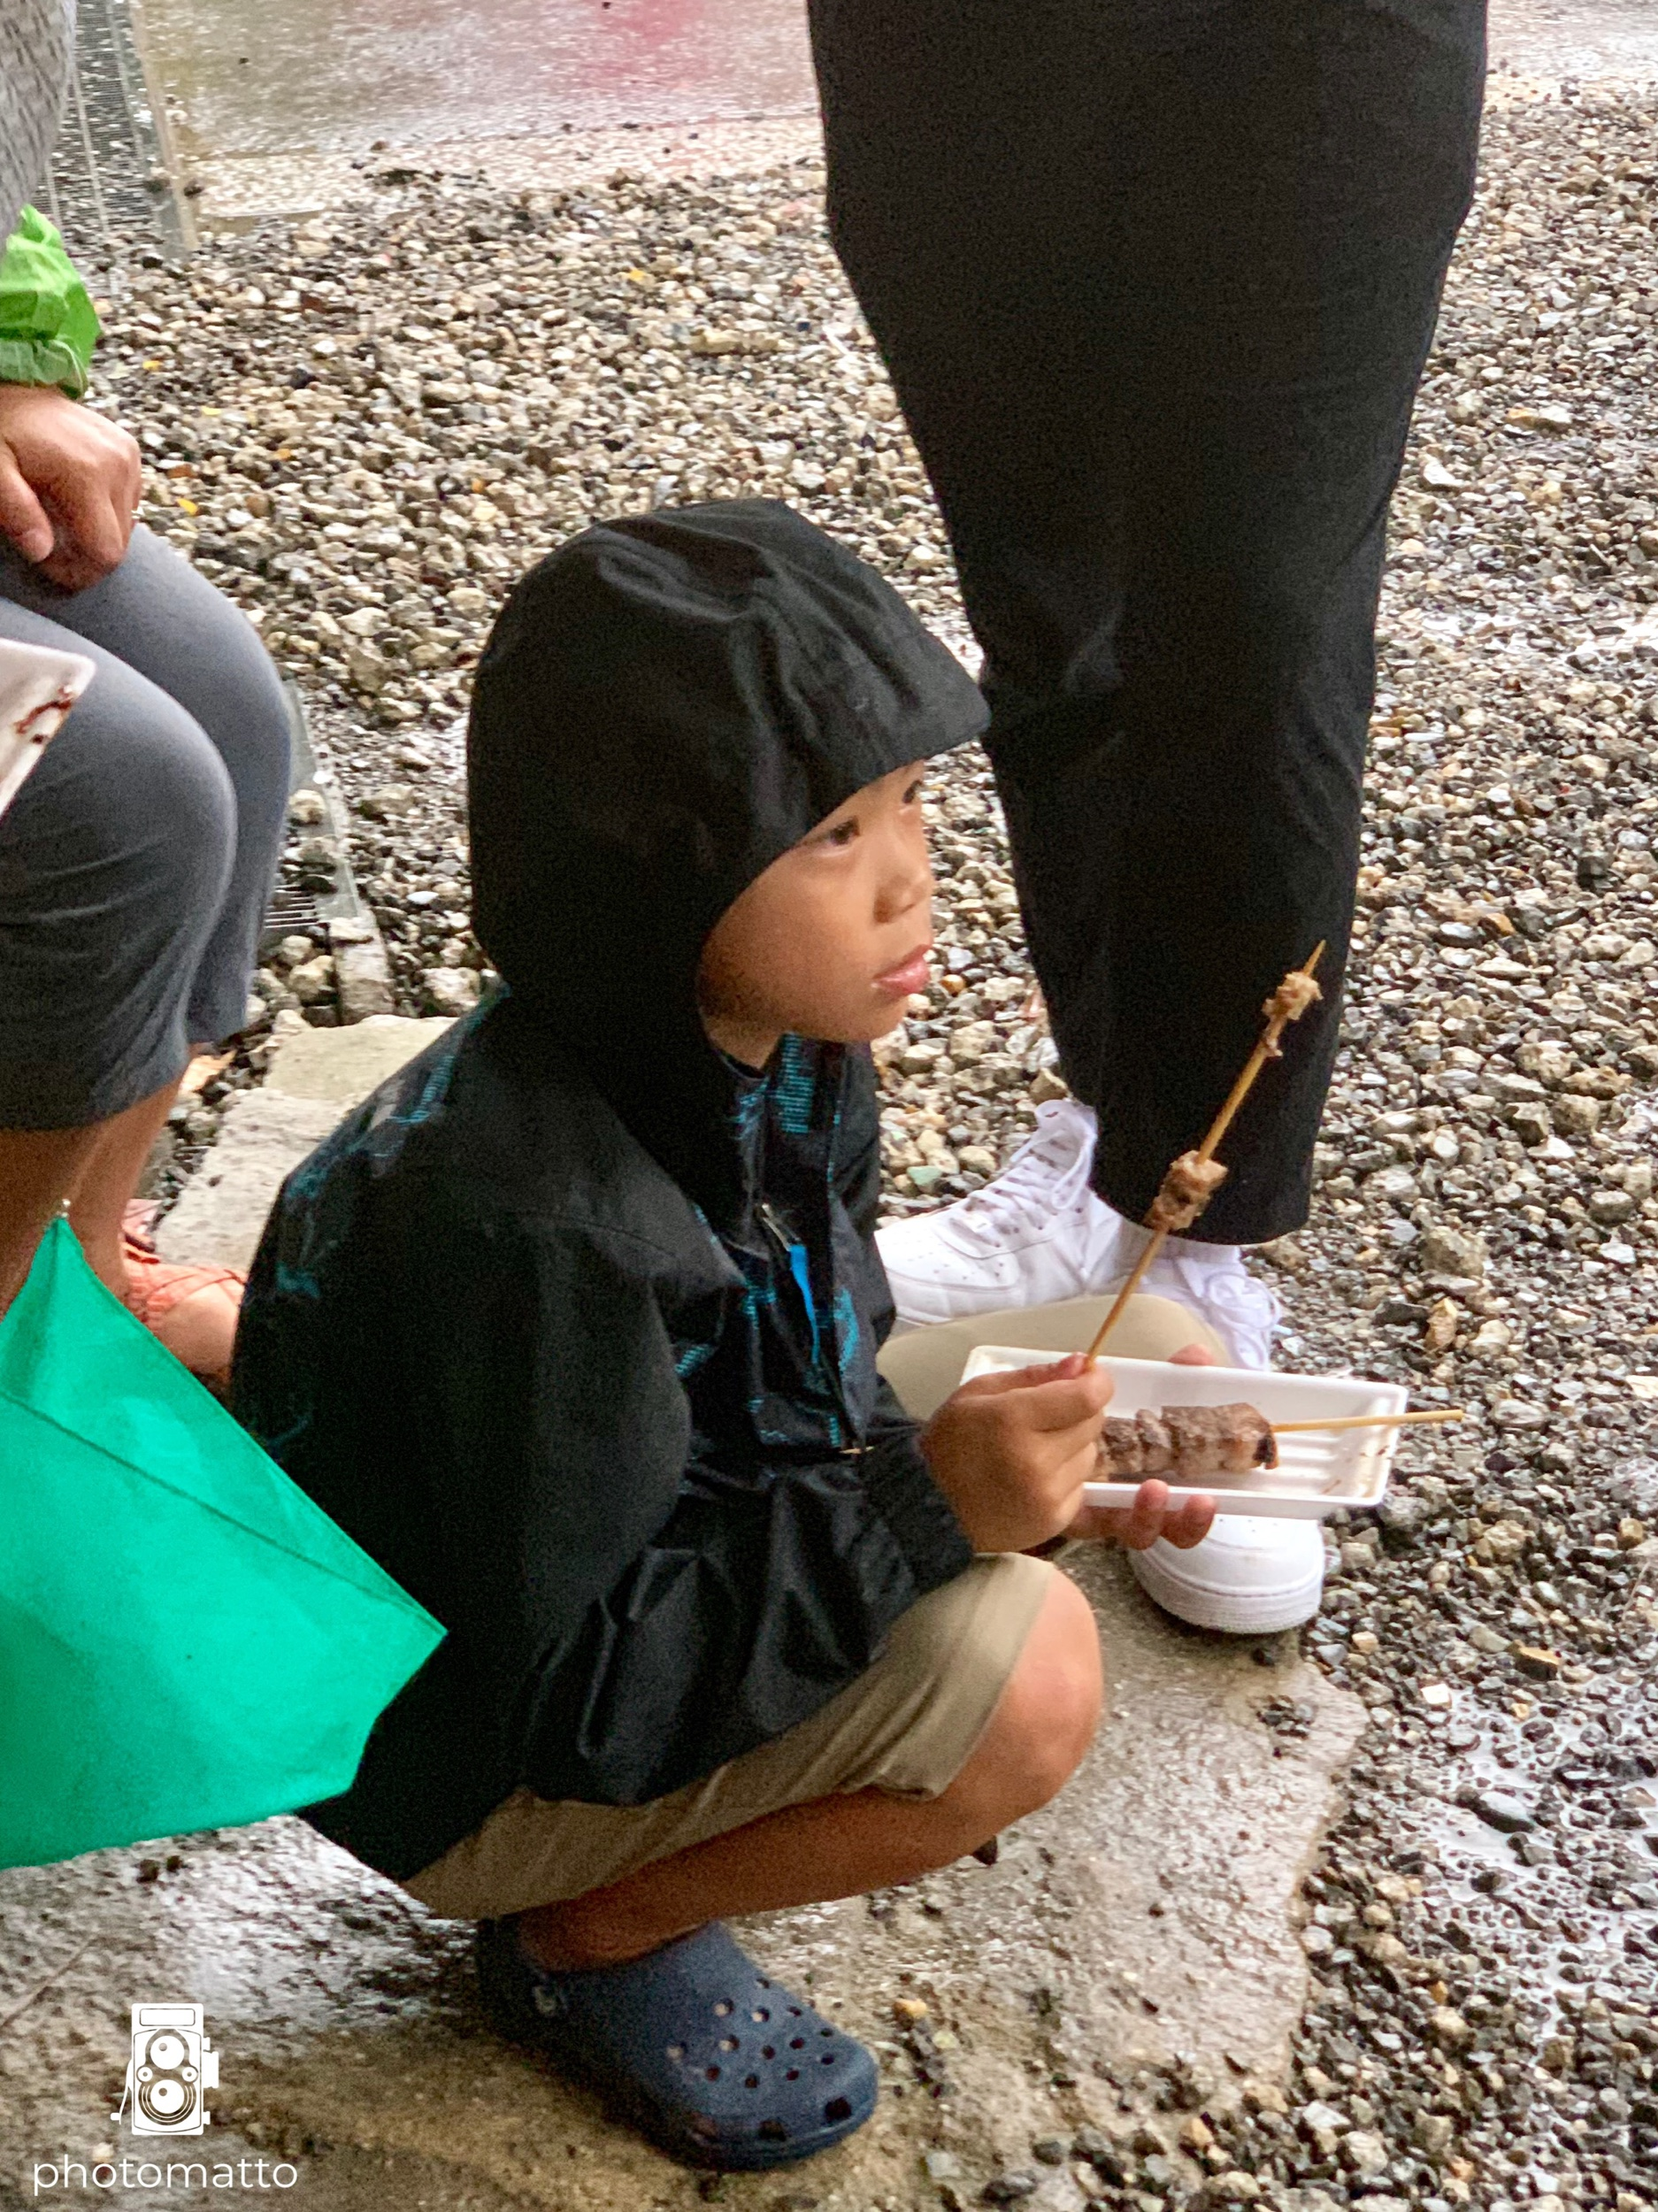 Thien was enjoying his meat stick and the fact that we found someplace undercover and dry to eat.